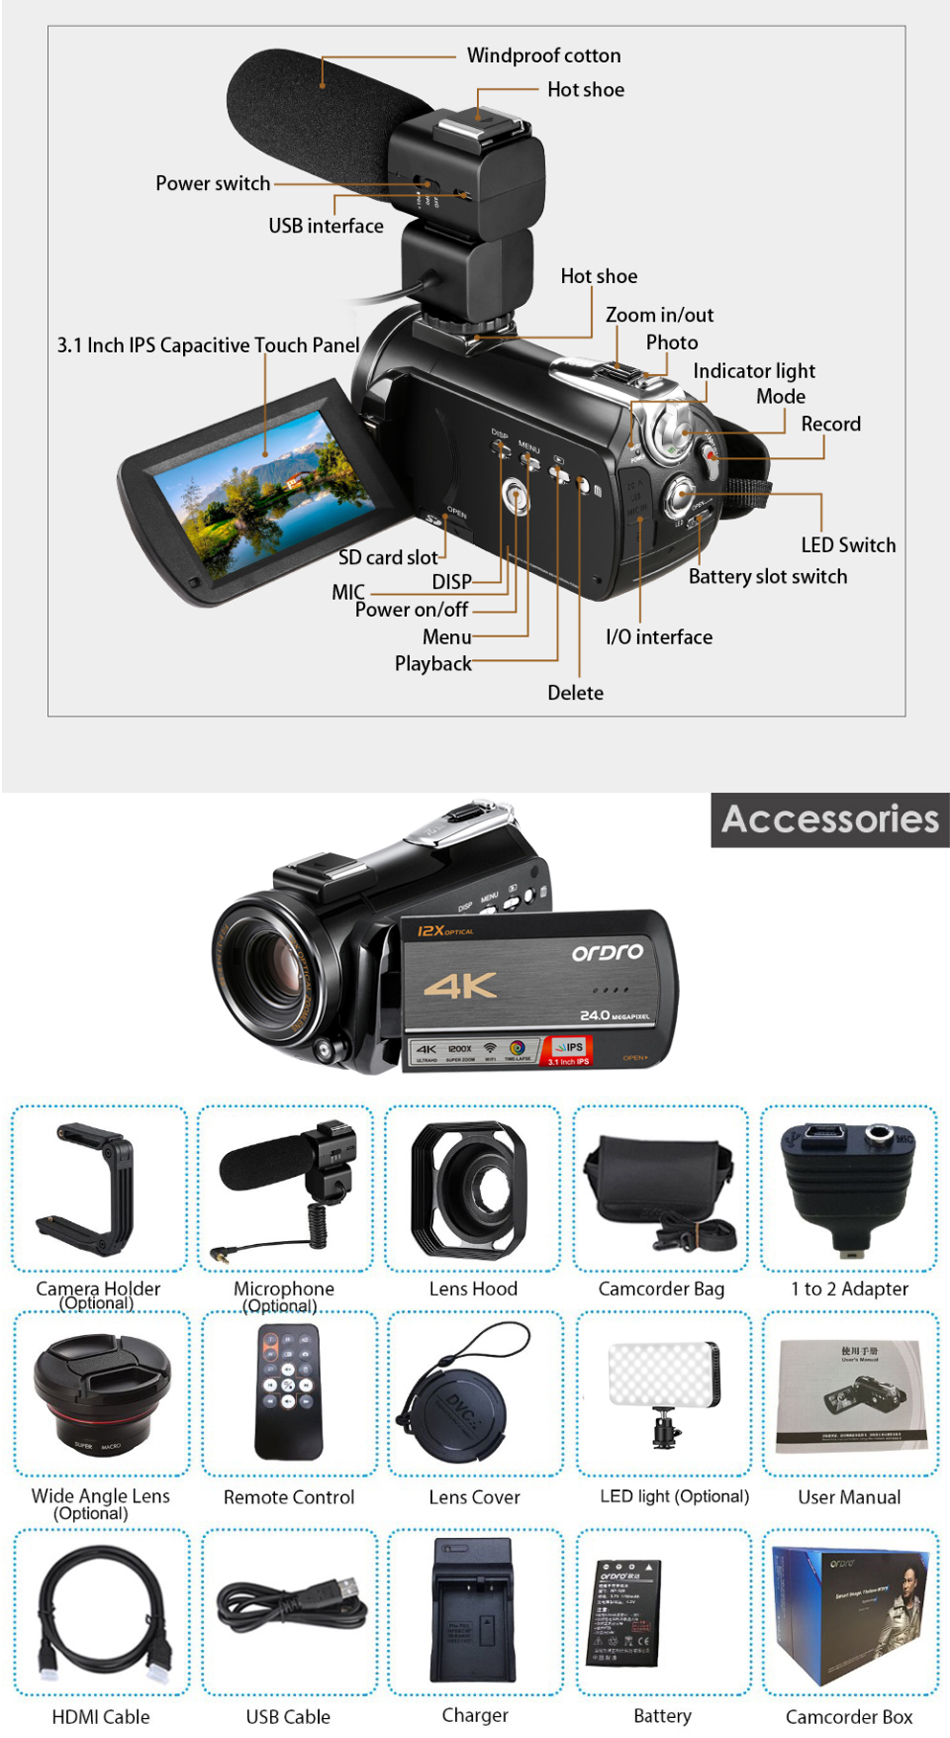 images/new-electronics/A1441708PB/ordro-hdr-ac5-4k-uhd-zoom-12x-fhd-24mp-wifi-ips-touch-screen-digtal-optical-dv-digital-video-camera-camcorder-plusbuyer_93.jpg